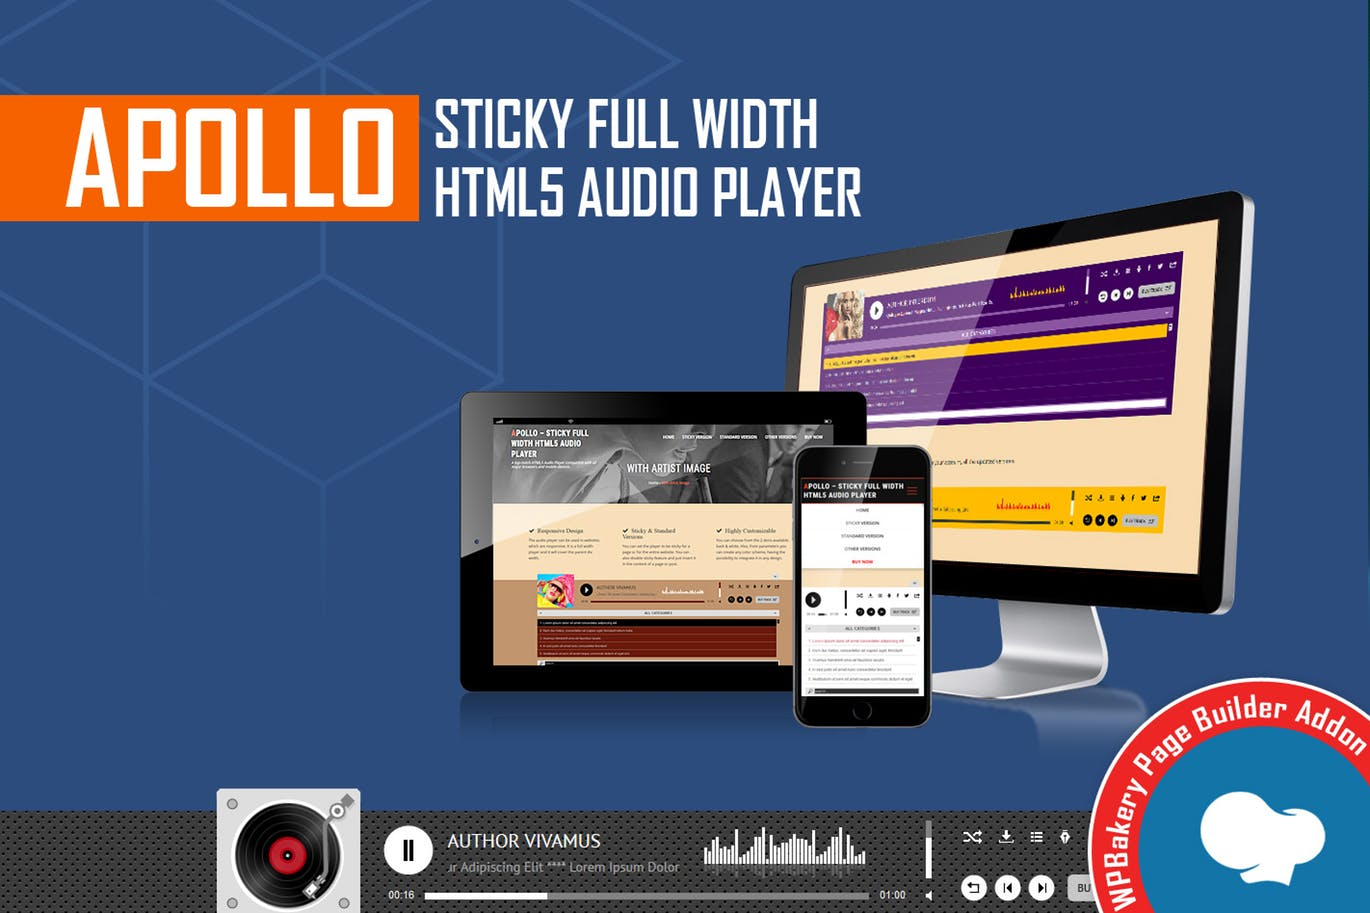 Apollo - Sticky Full Width HTML5 Audio Player - WPBakery Page Builder Addon